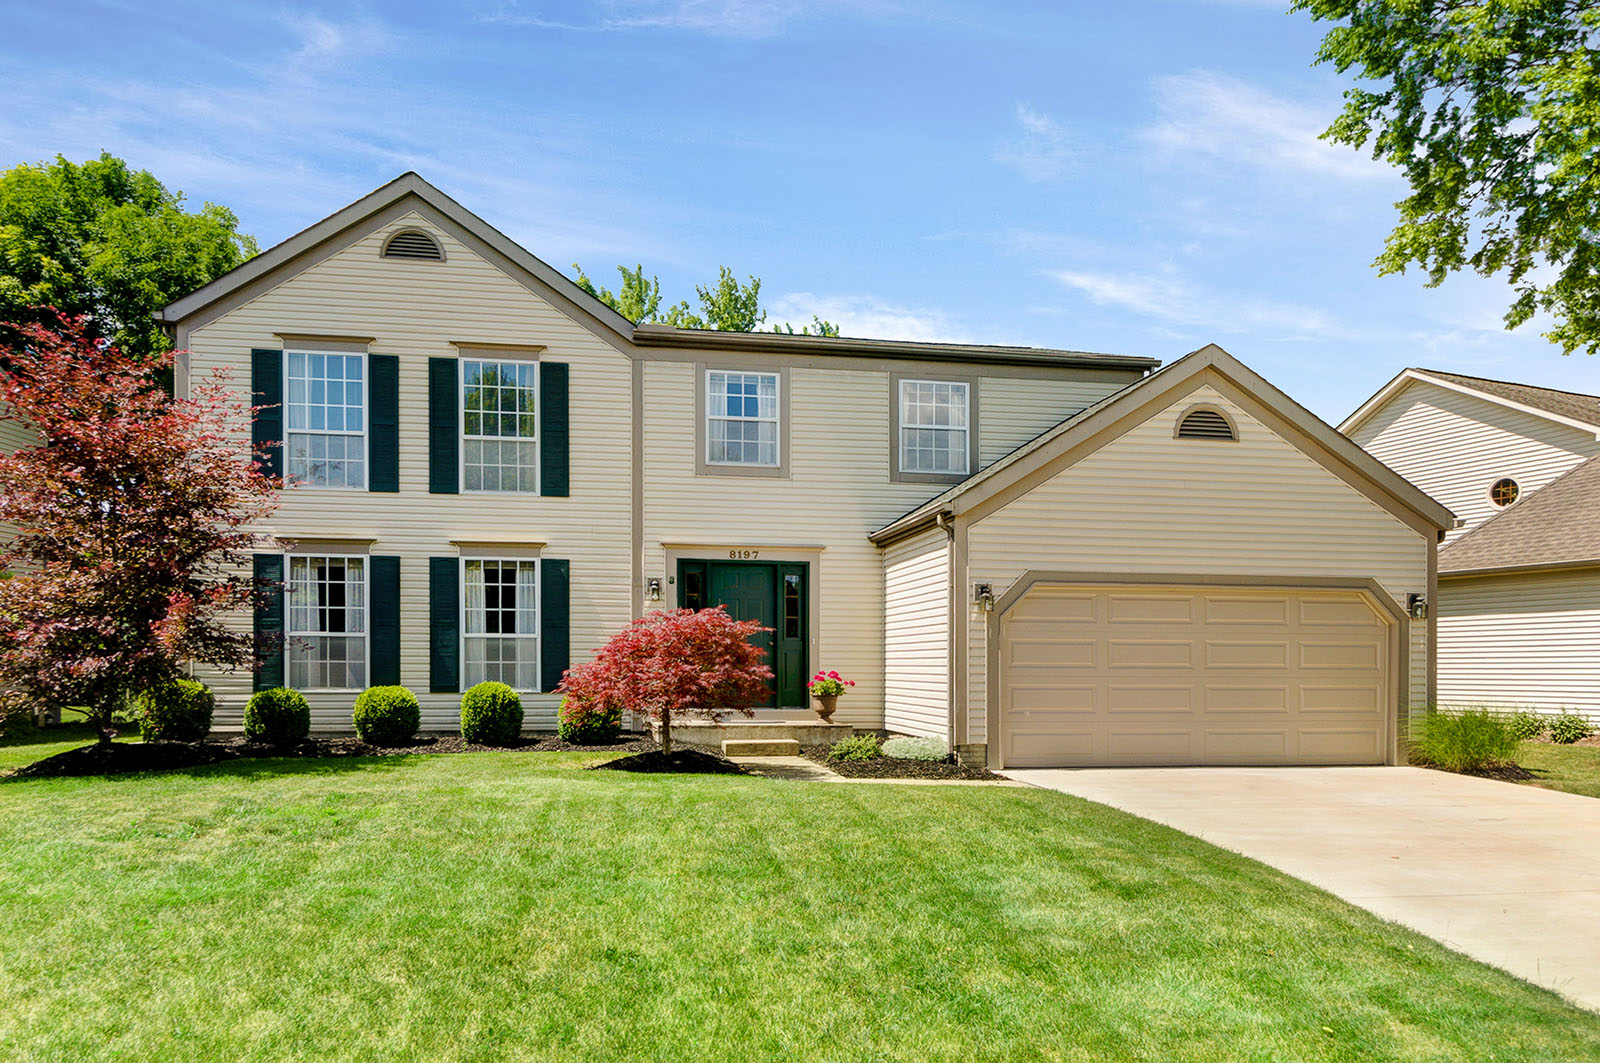 8197 Storrow Drive, Westerville OH